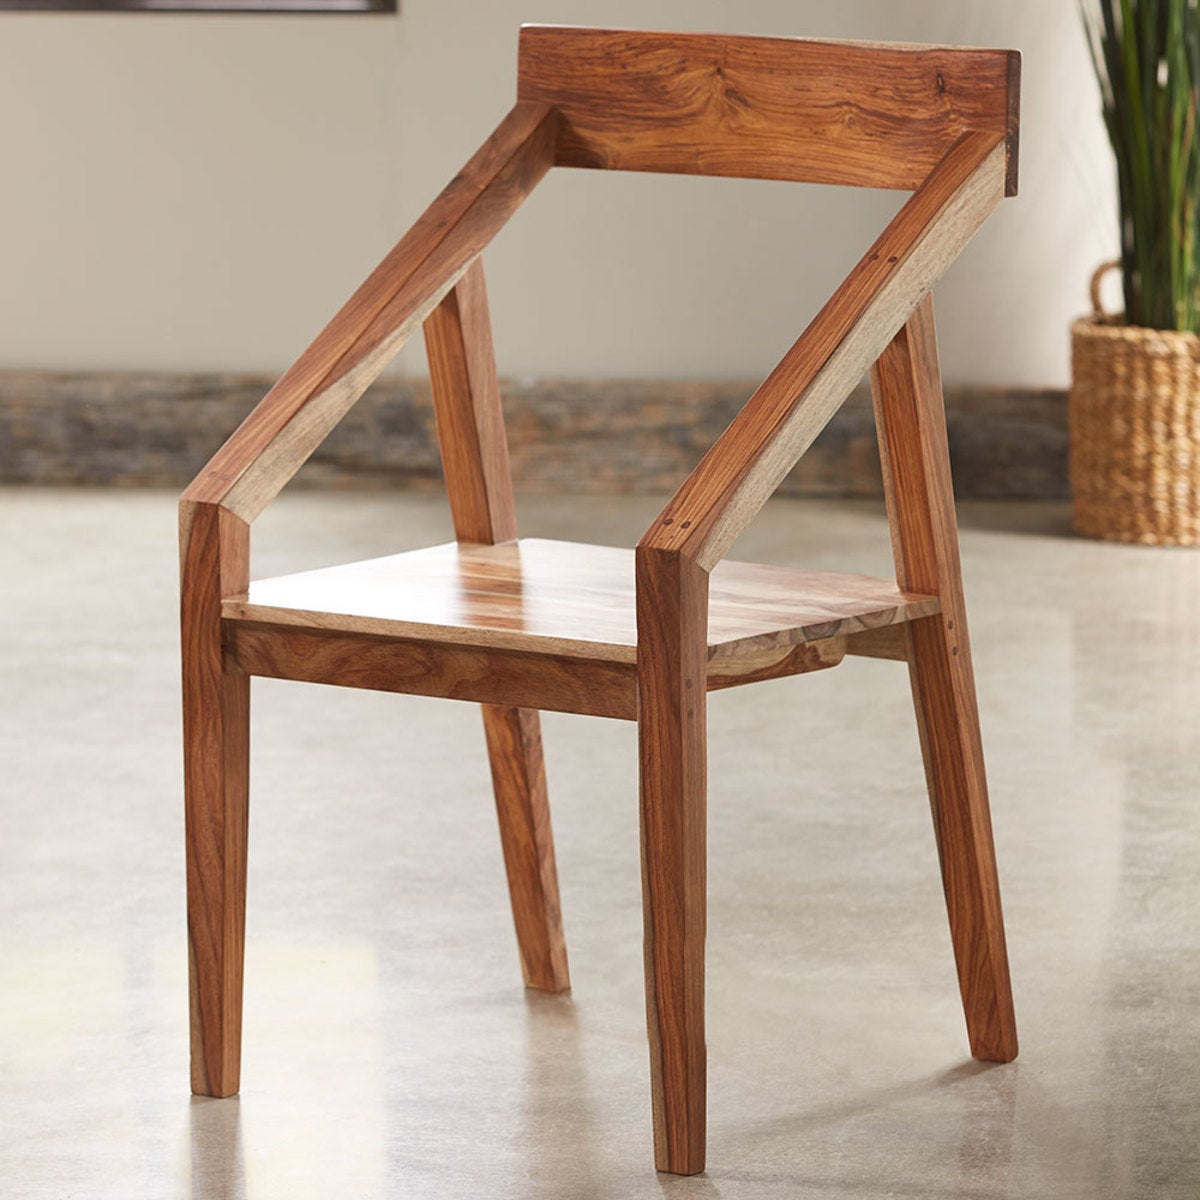 Sheesham Wood Angled Arm Chair